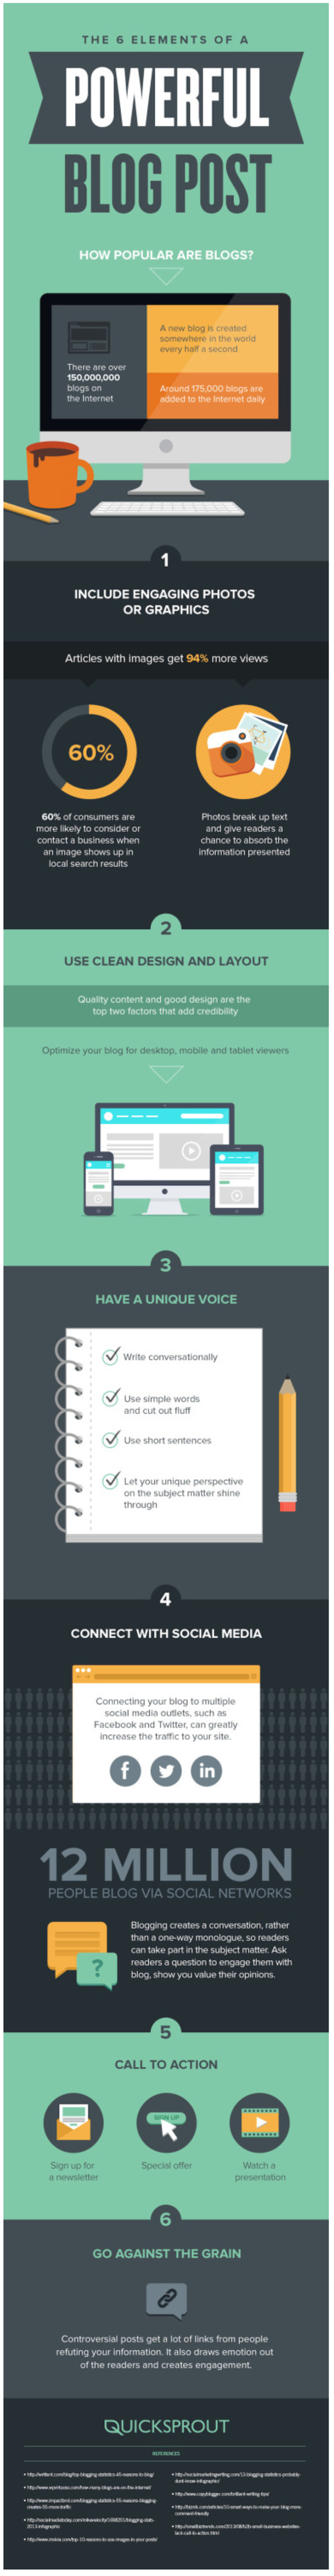 Infographic - Six important elements needed to create a successful blog post